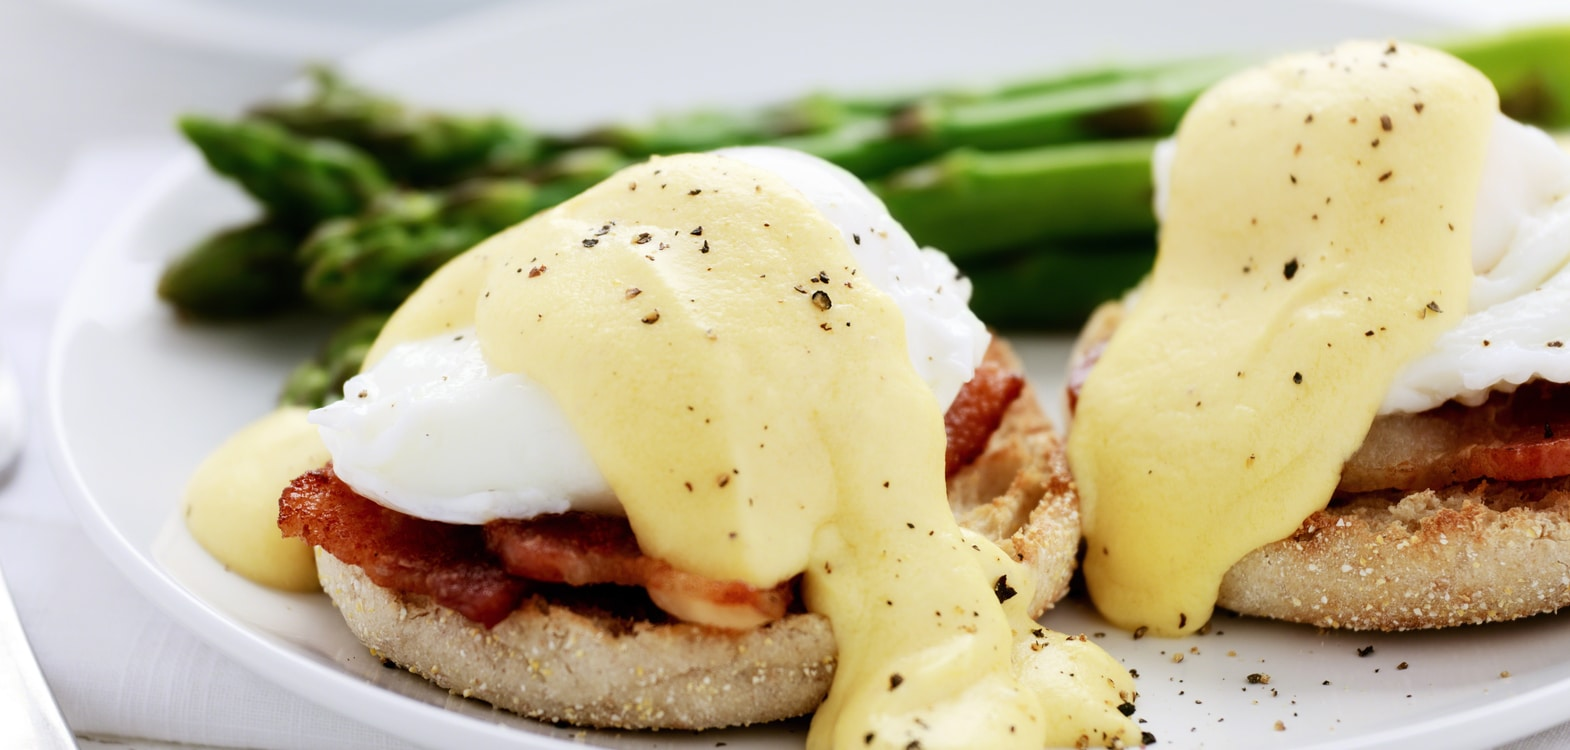 English muffins topped with grilled bacon, poached eggs and hollandaise sauce with black pepper with asparagus in the background